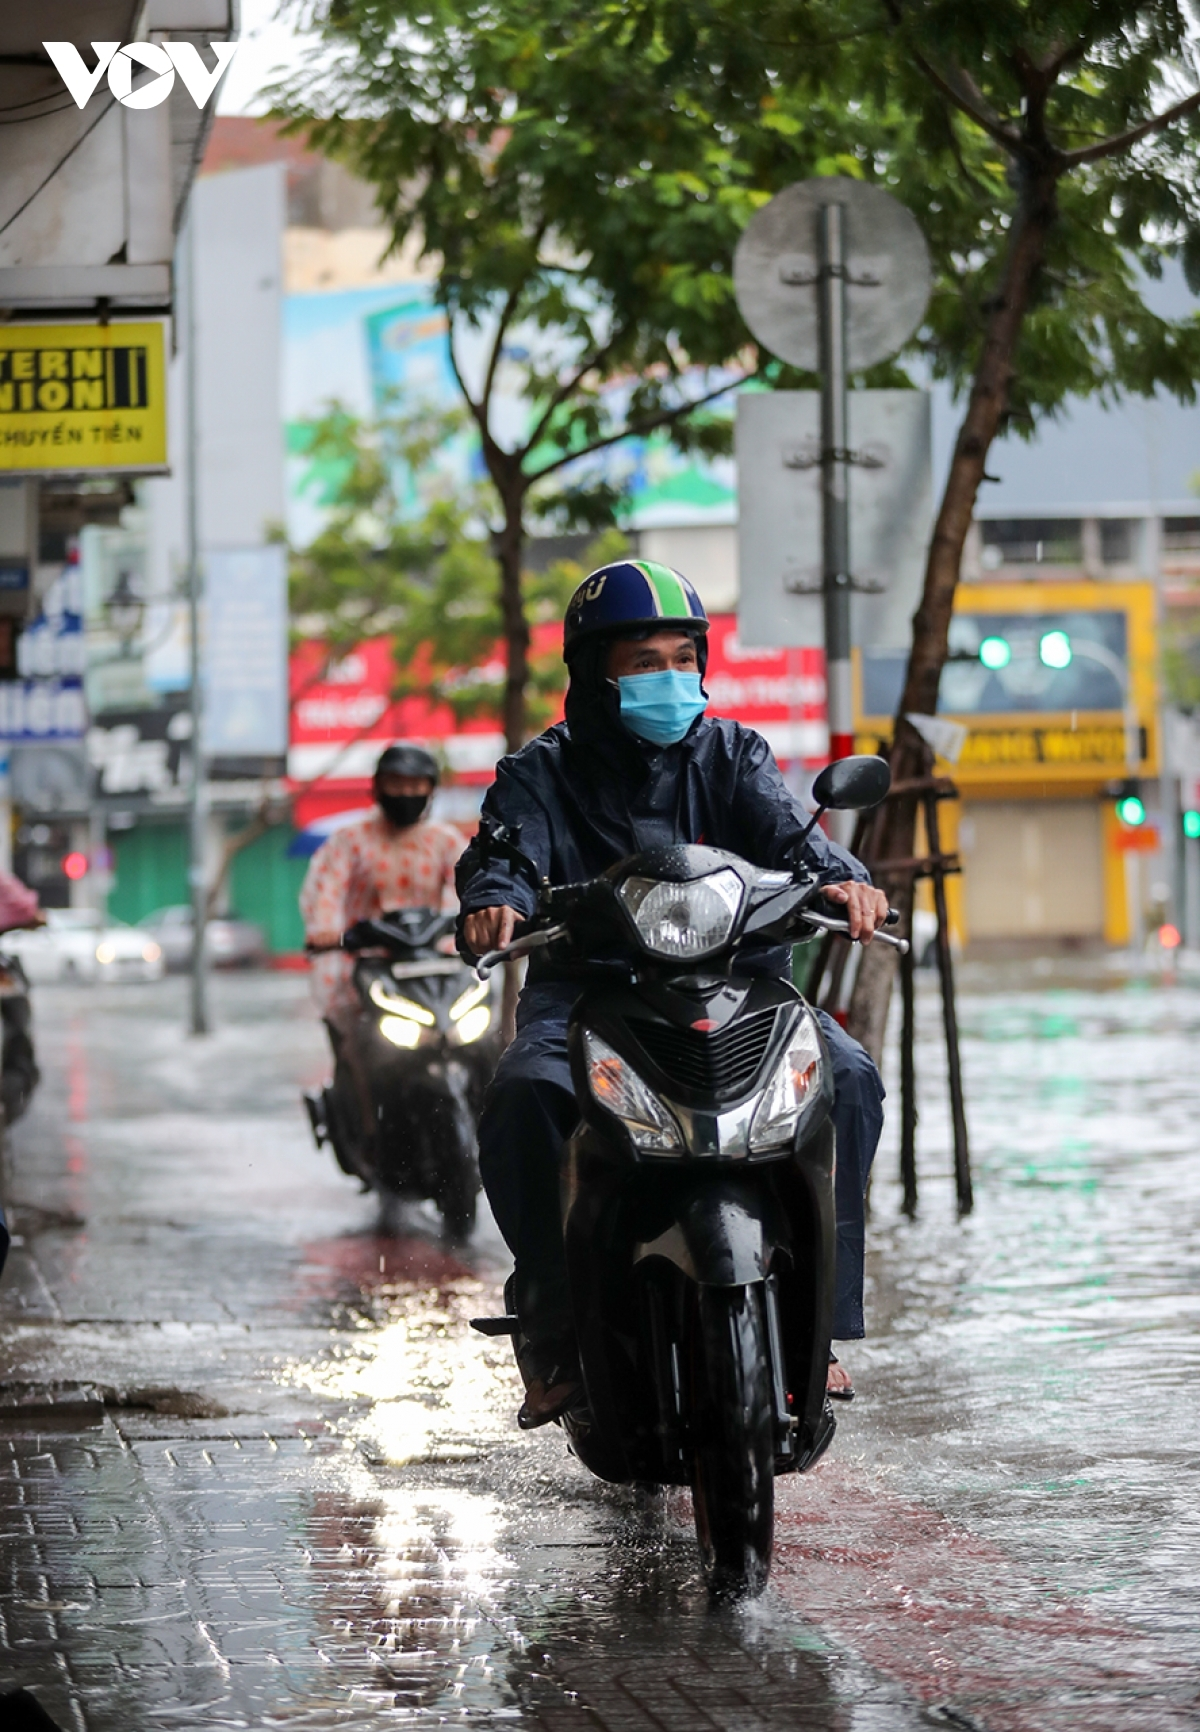 A number of motorbike drivers are forced to travel on the pavements as Le Duan street is left flooded.